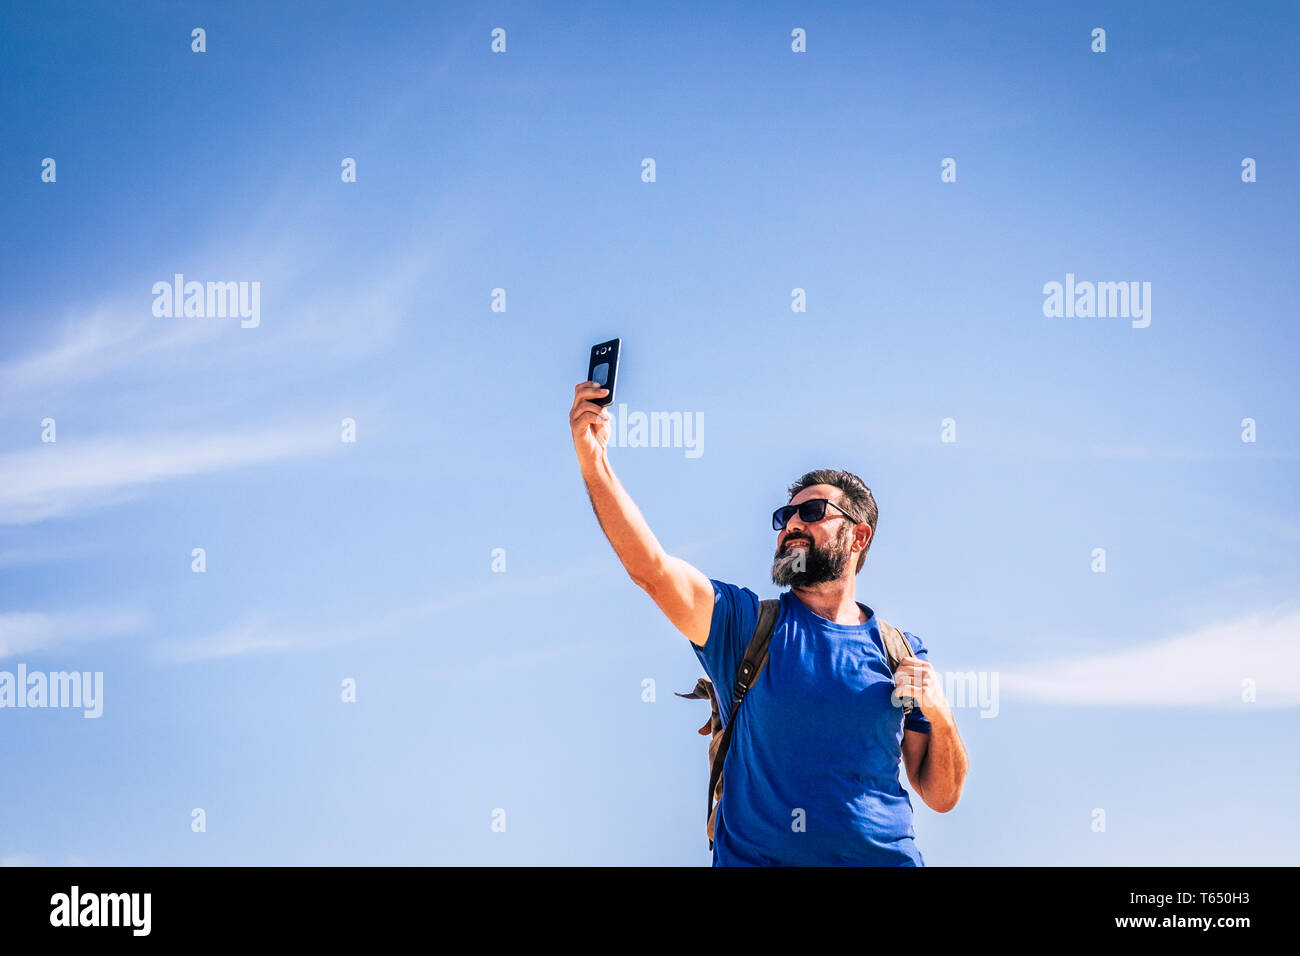 People and internet technology man with beard and sunlgasses loooking for signal with a mobile phone device - people traveling with backpack for adven Stock Photo